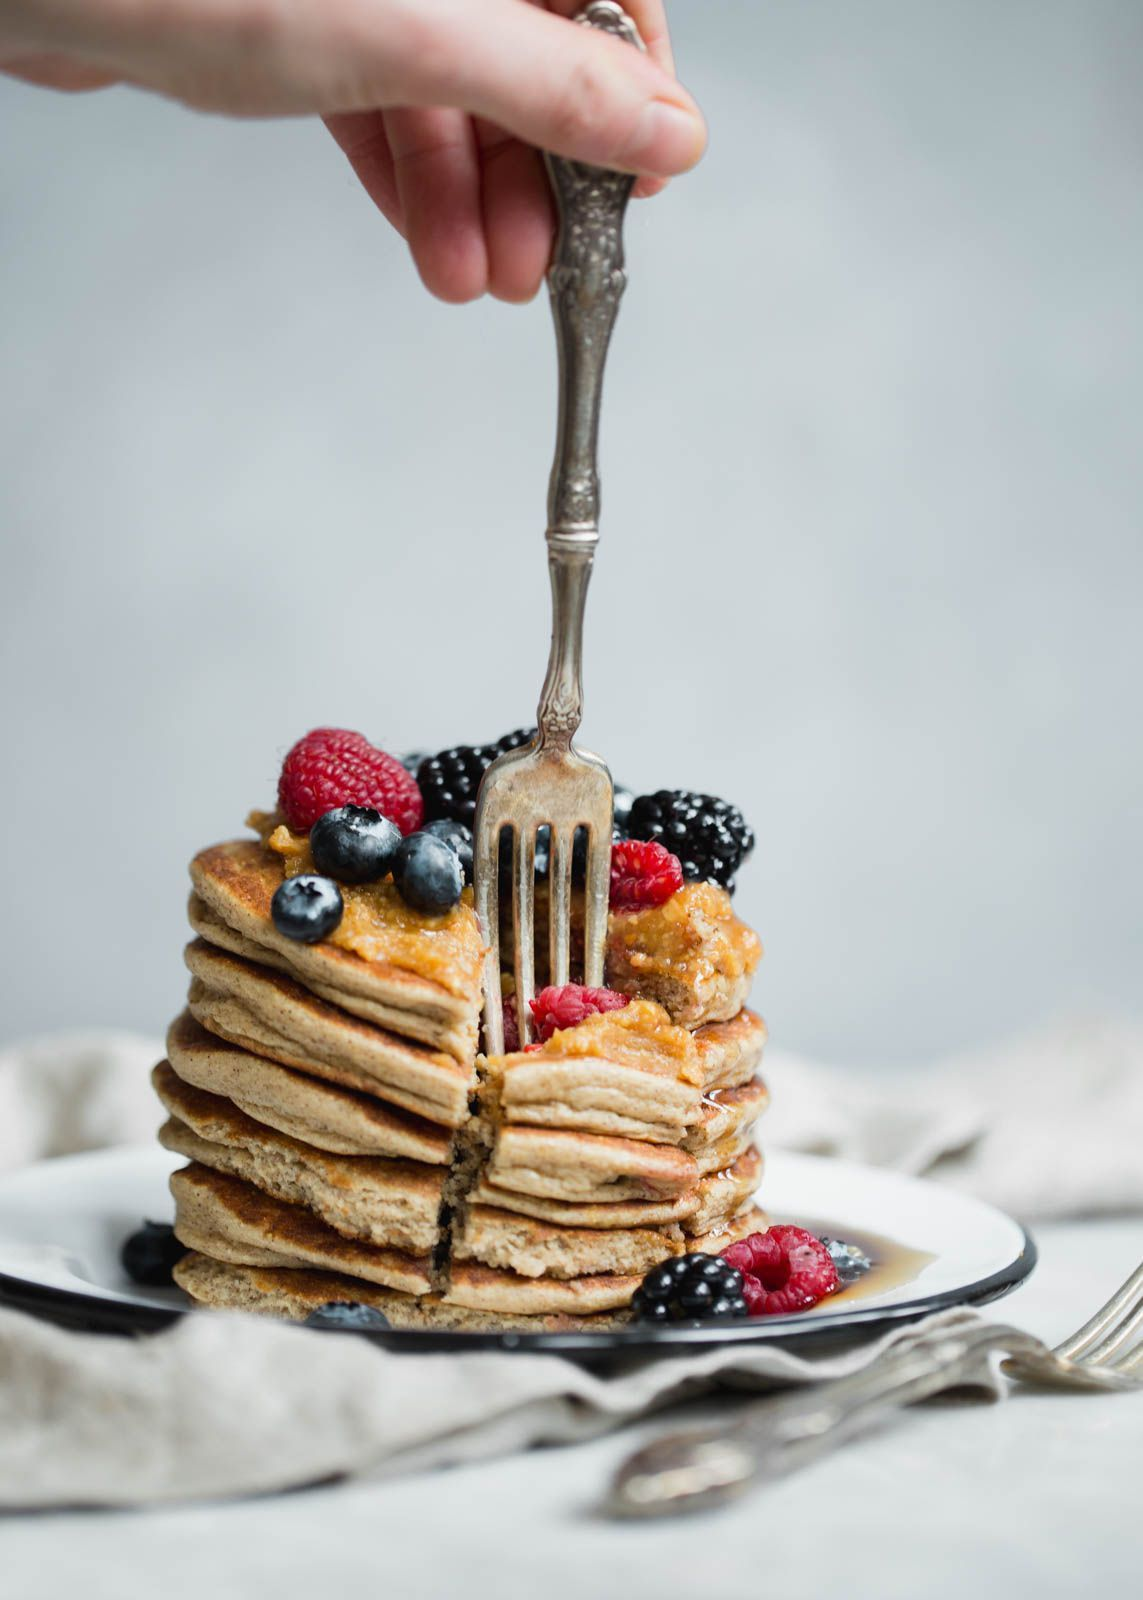 flapjacked protein pancake and baking mix breakfast oatmeal rh pinterest com protein pancake recipe cottage cheese oatmeal protein pancakes with cottage cheese and oatmeal